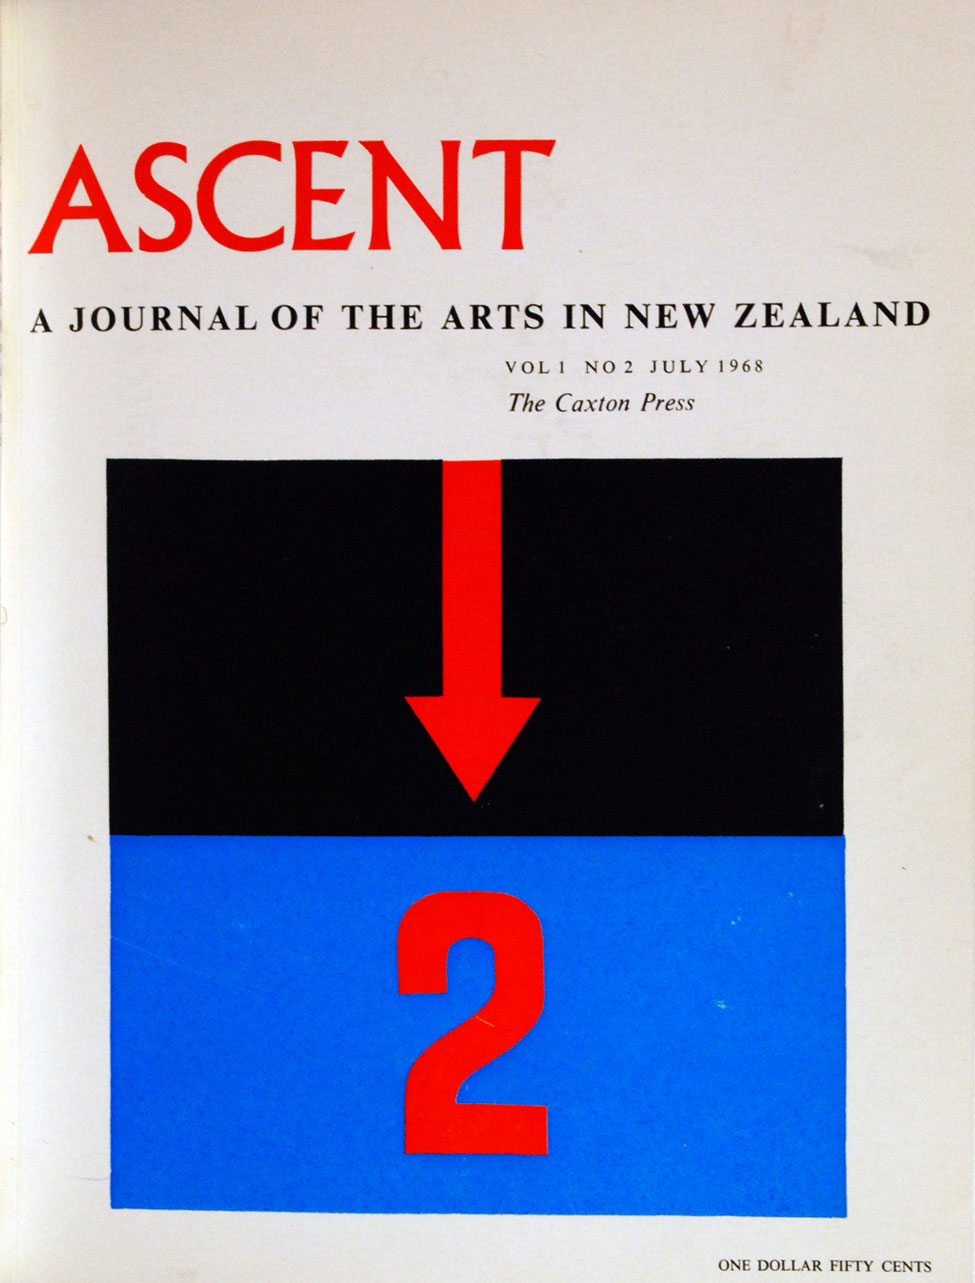 Ascent: A Journal of the Arts in New Zealand, Vol. 1 No. 2. <i>Christchurch: The Caxton Press, July 1968.</i>